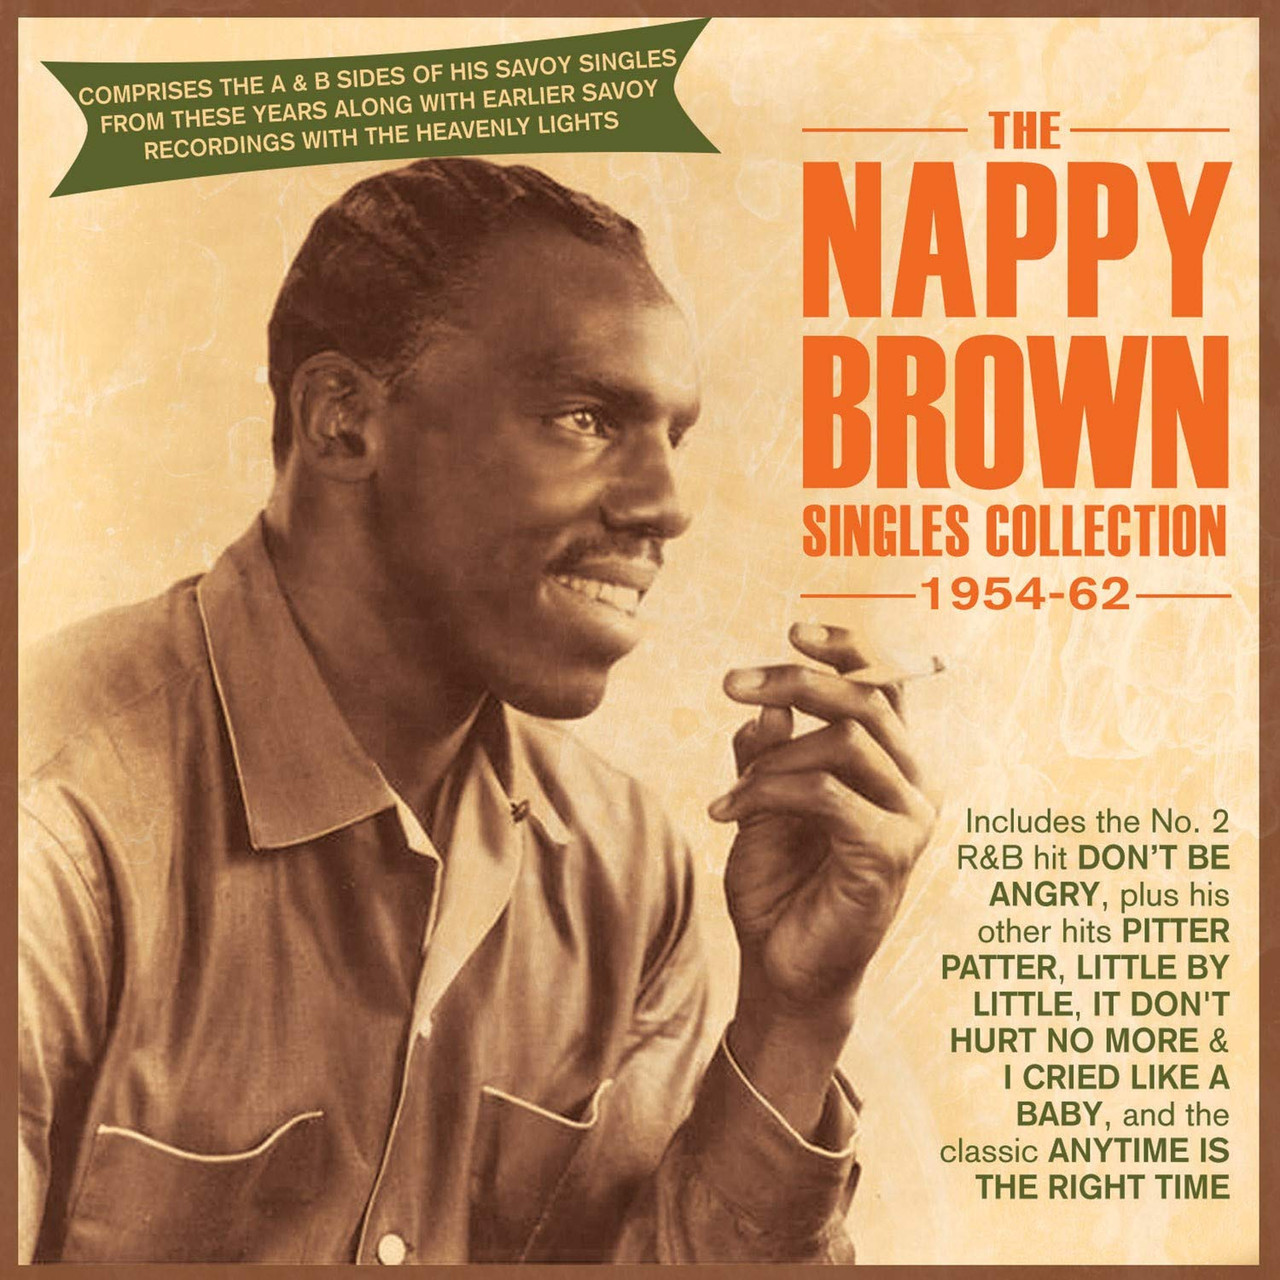 NAPPY BROWN - Singles Collection 1954-62 - 2 CD SET - 52 TRACKS